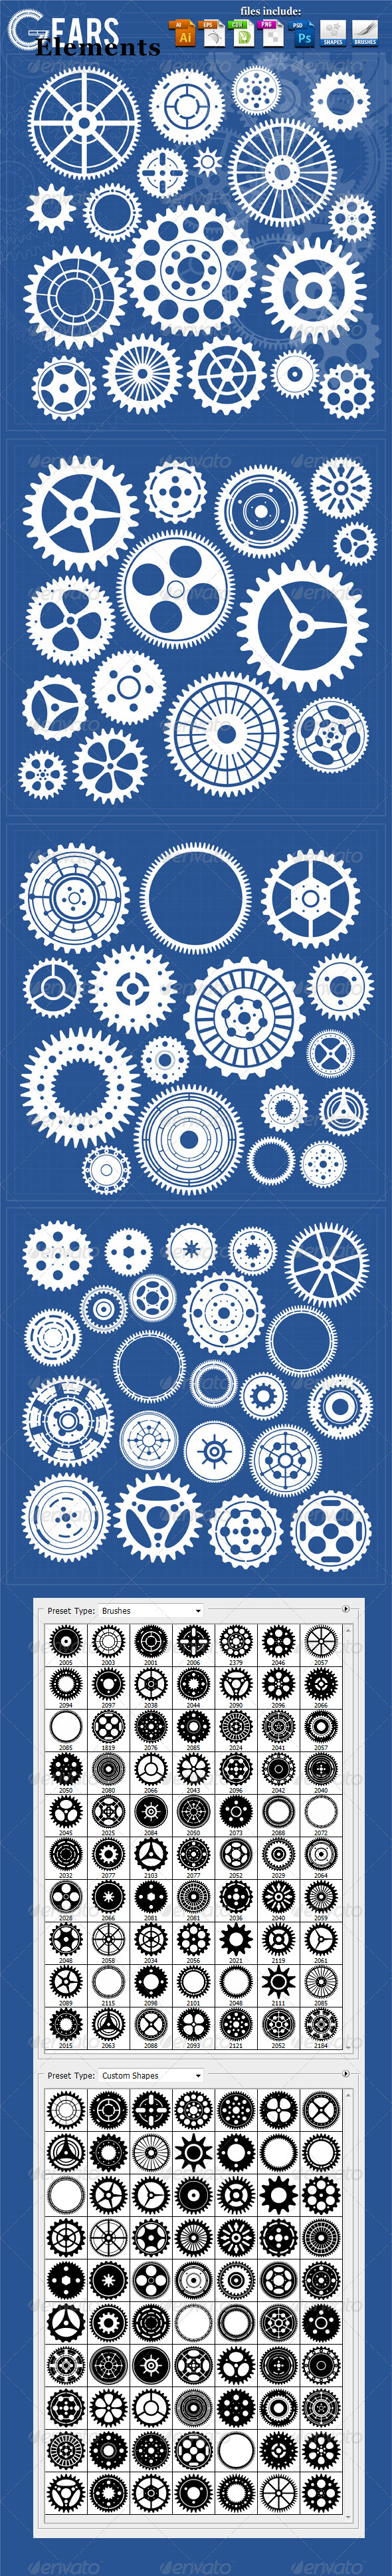 GraphicRiver 70 Gears Elements 3800883